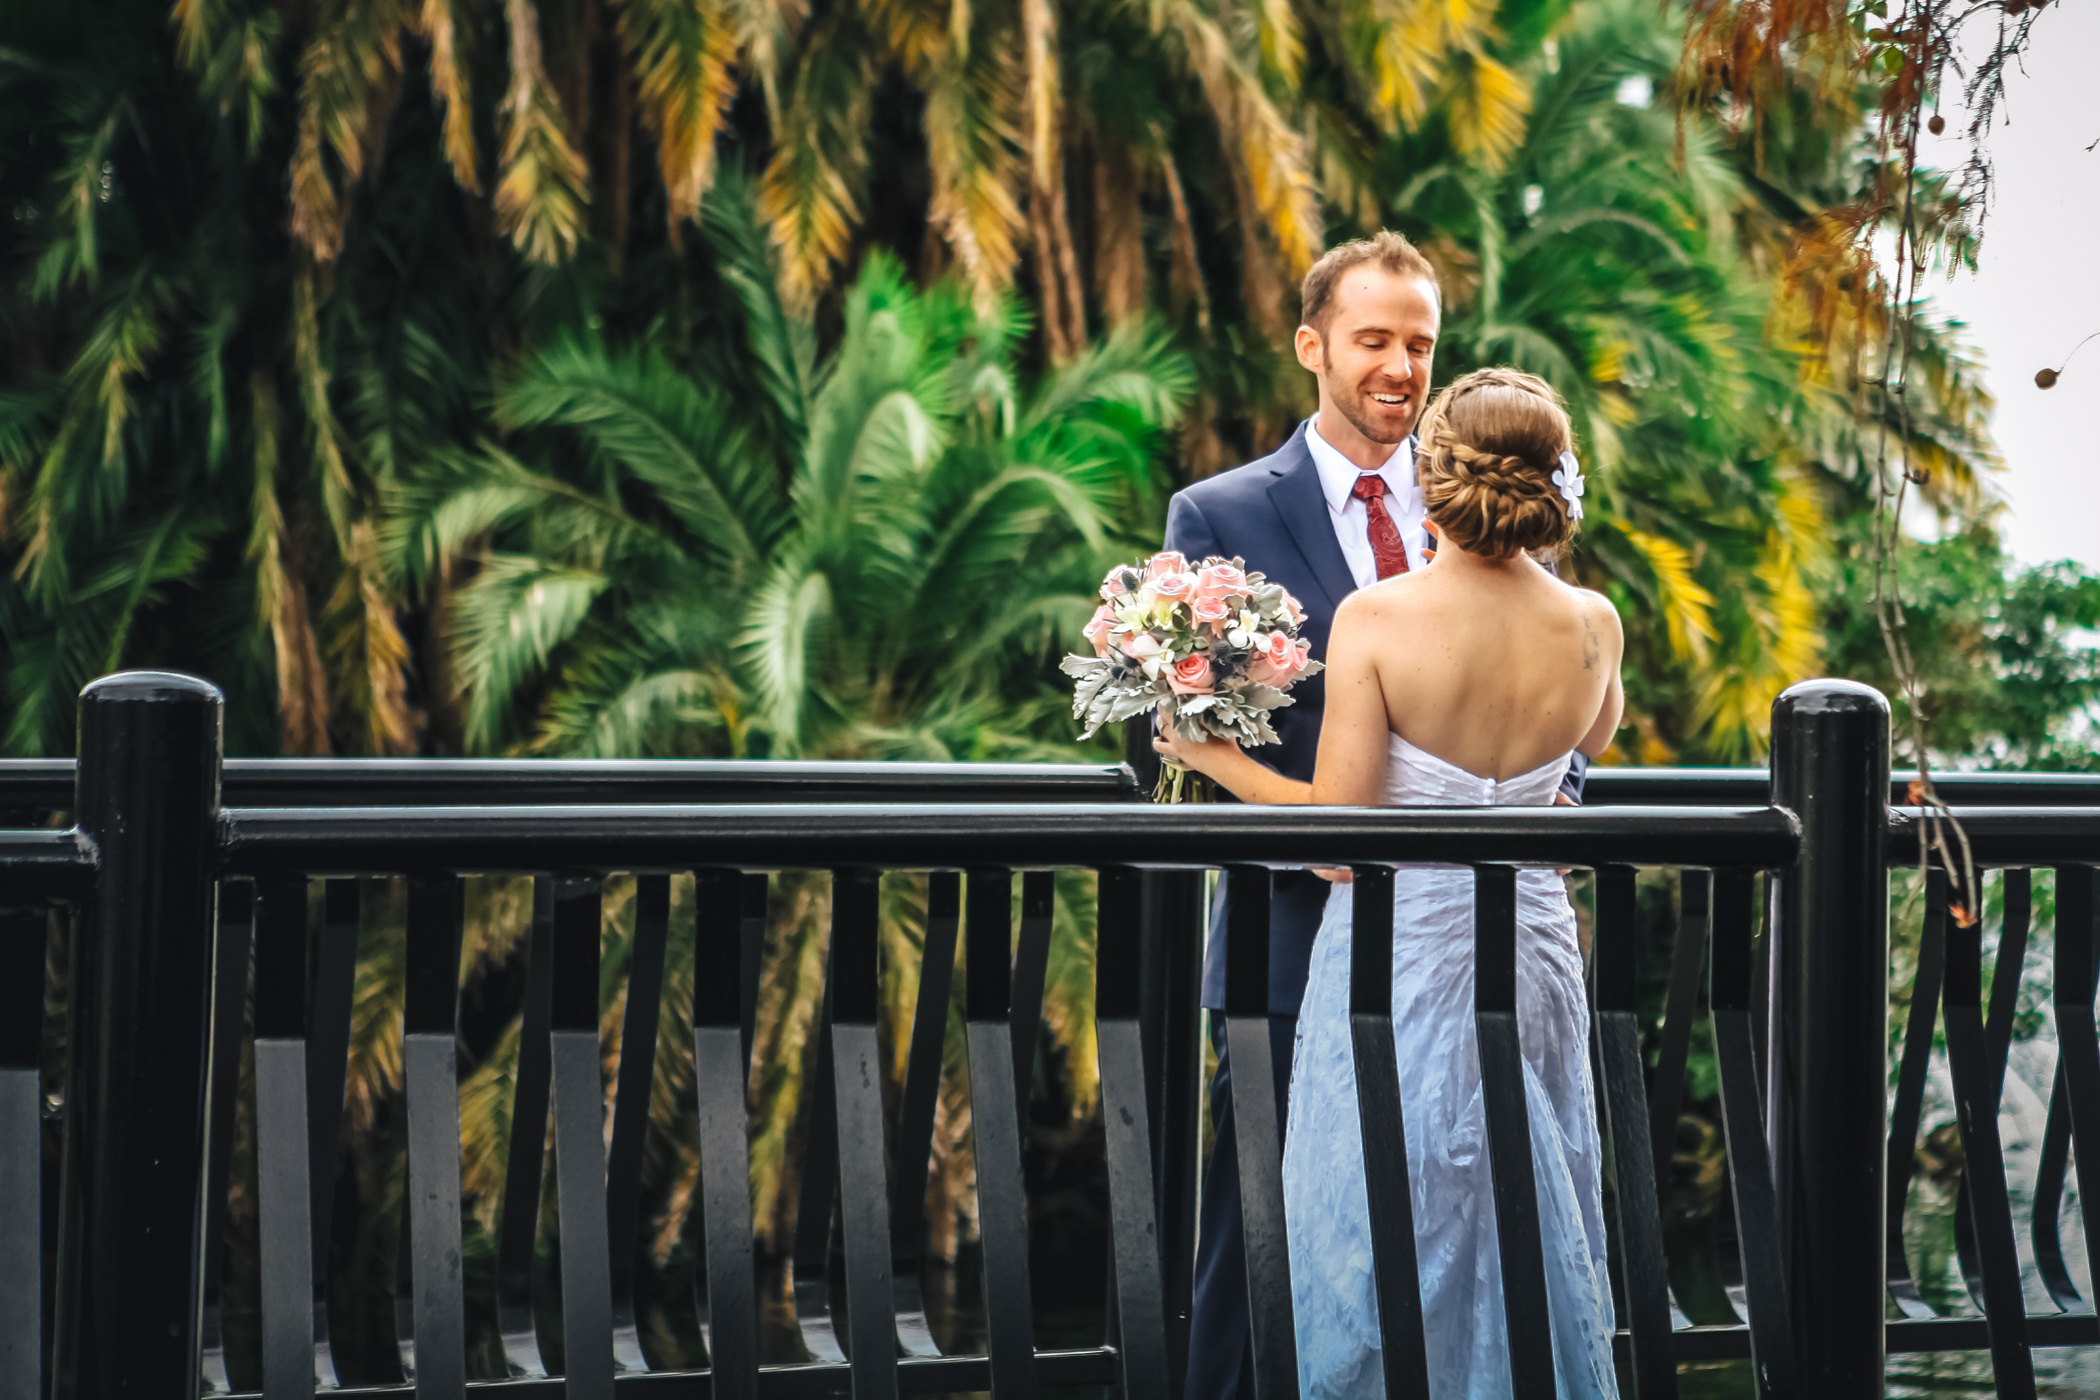 Downtown Orlando Wedding at Lake Lucerne Christmas Theme Red Dress Navy Suits 076.jpg